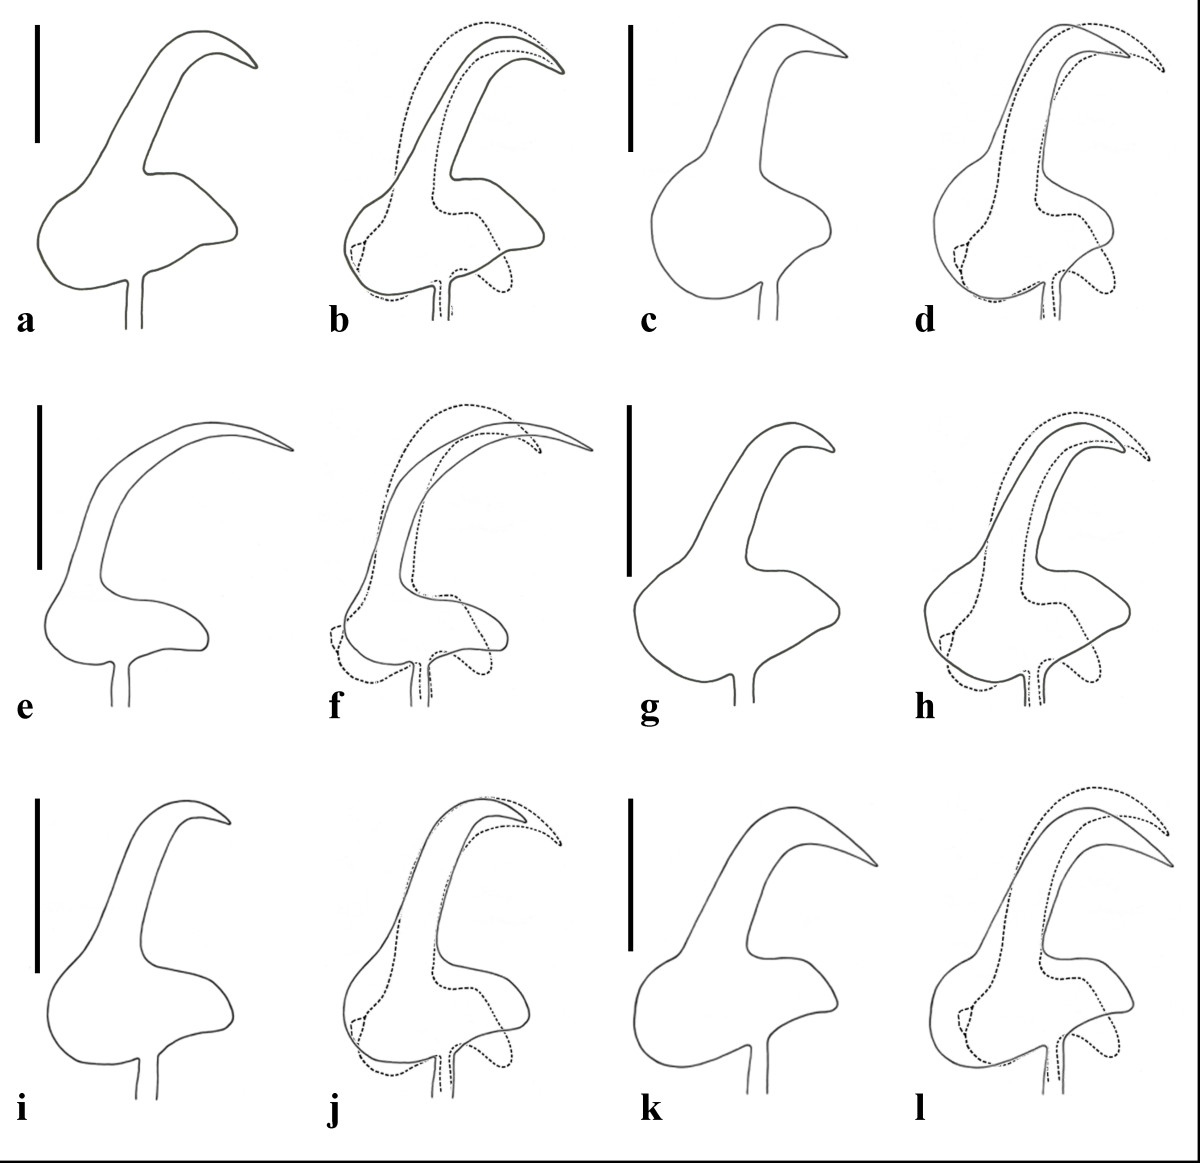 http://static-content.springer.com/image/art%3A10.1186%2F1756-3305-4-100/MediaObjects/13071_2011_Article_354_Fig3_HTML.jpg